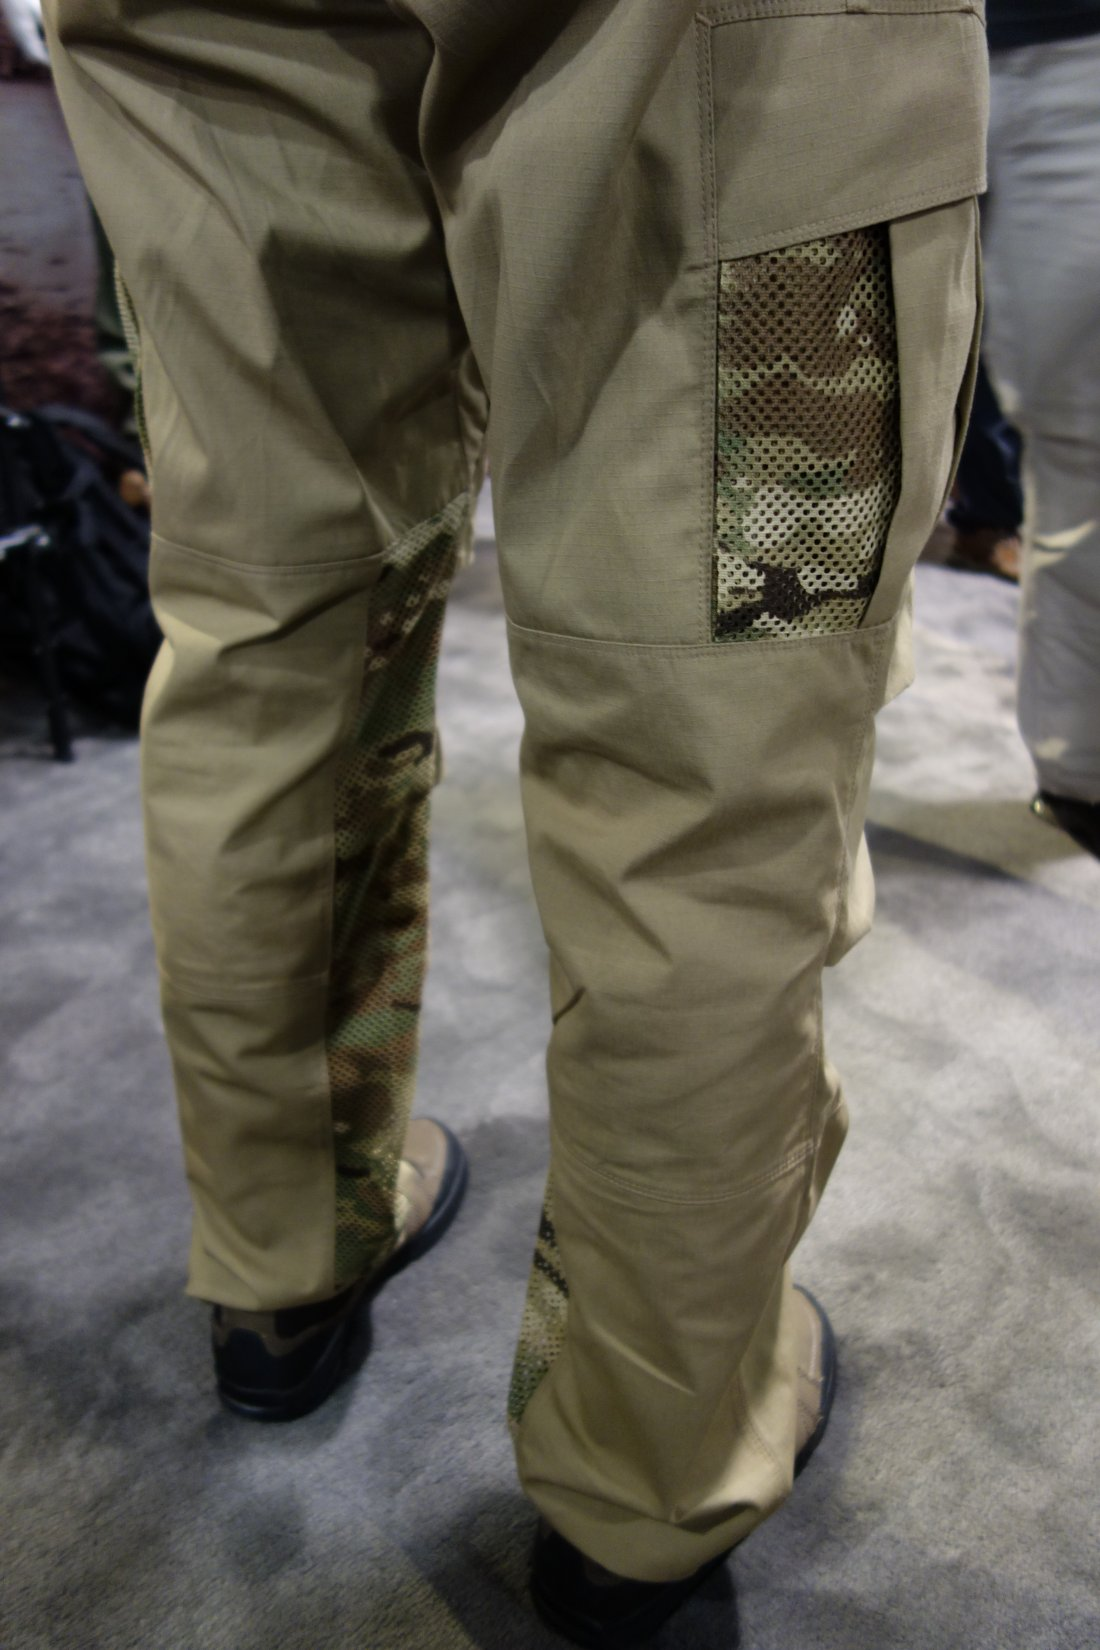 Vertx Airflow Phantom Ops Pant by Fighter Design Combat Tactical Pants with Passive Cooling Technology Evaporative Cooling Adam Slank SHOT Show 2014 David Crane DefenseReview.com DR 7 Vertx Airflow Phantom Ops Pant by Fighter Design: Combat/Tactical Pants with Passive Cooling Mesh Technology (Video!)